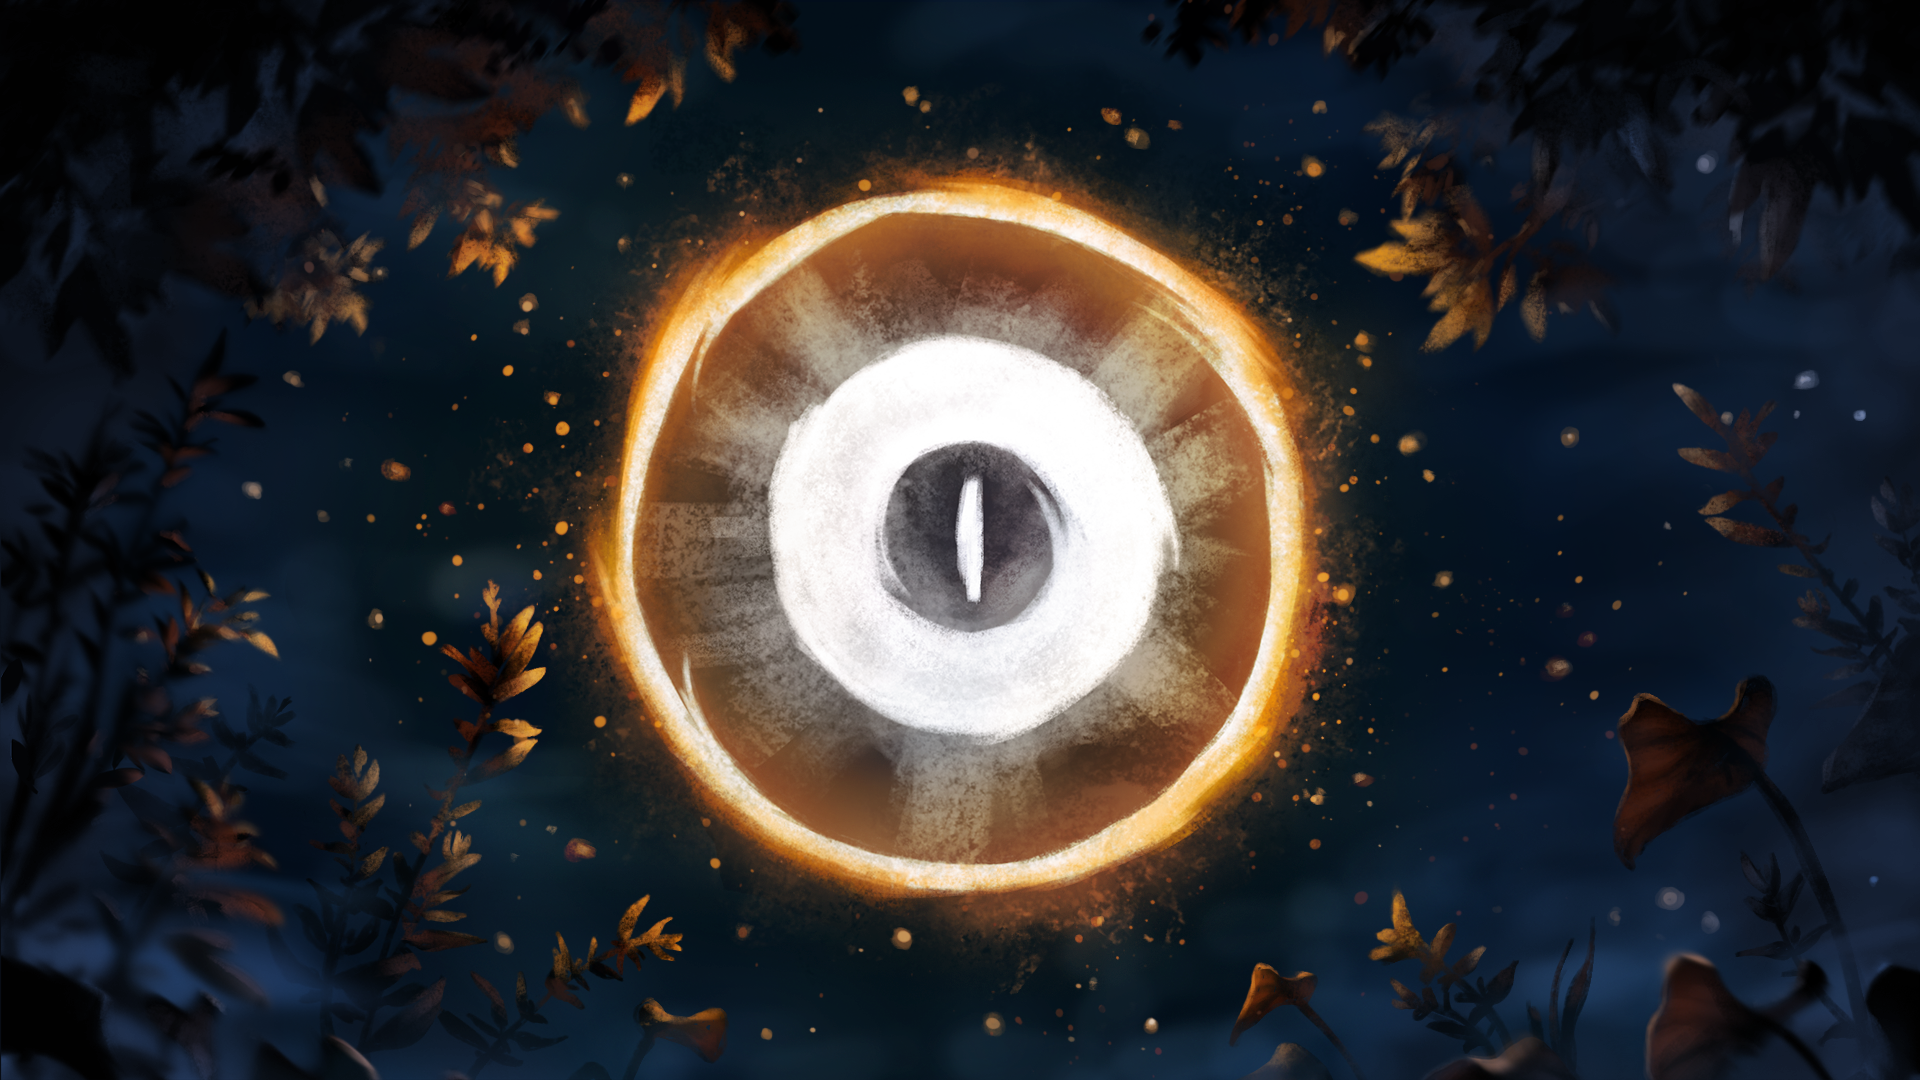 Choices Choices achievement for Ori and the Blind Forest on Nintendo Switch